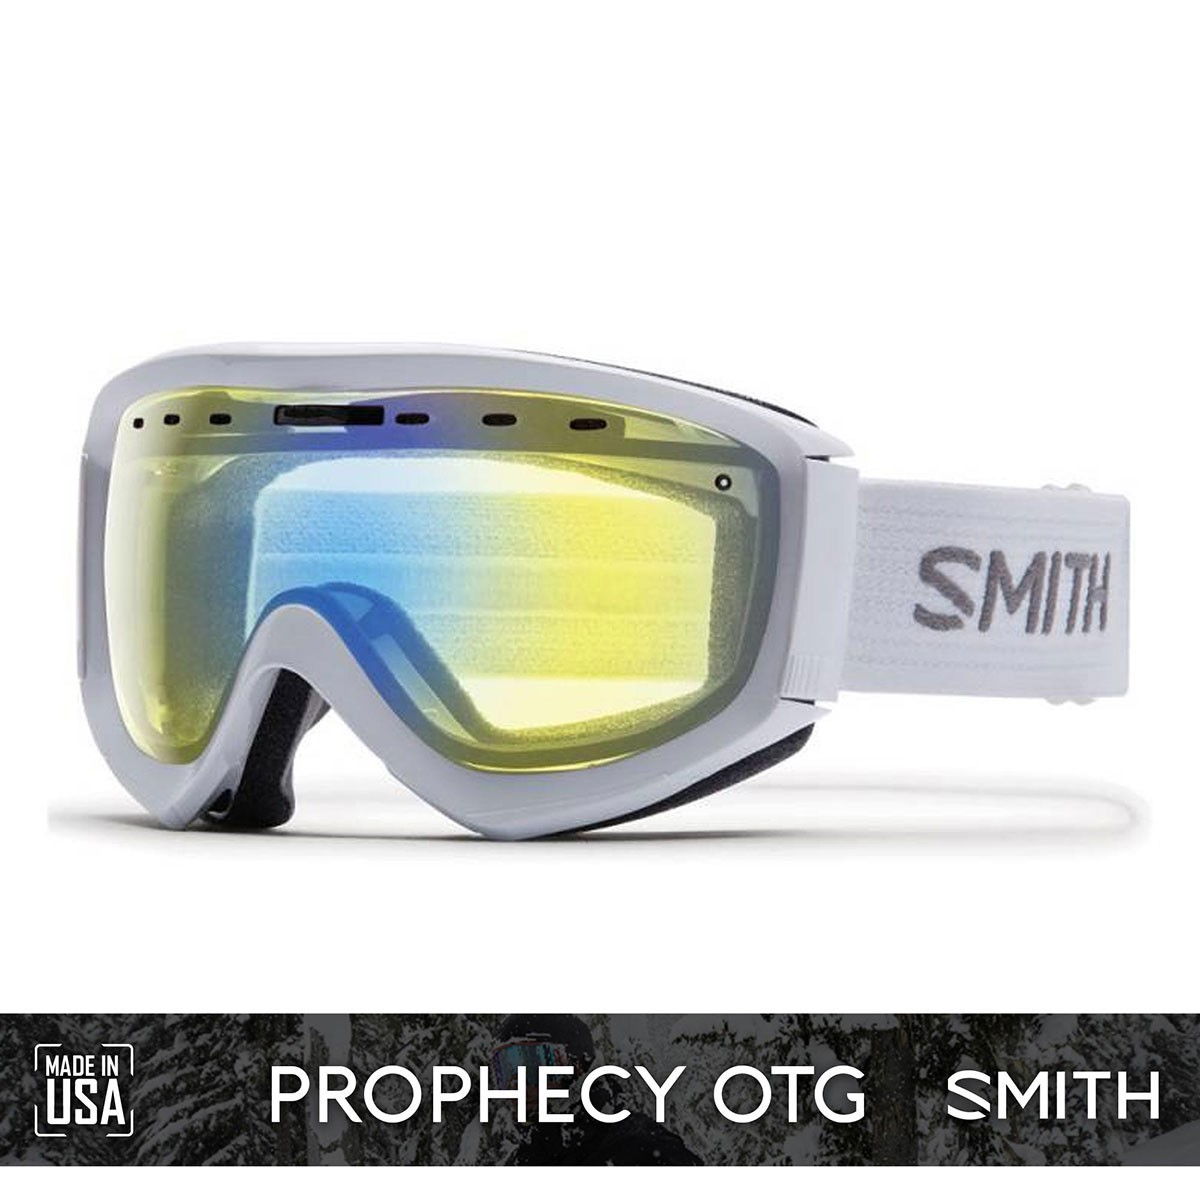 SMITH PROPHECY OTG White | S1 YELLOW Flash - Изображение - AQUAMATRIX